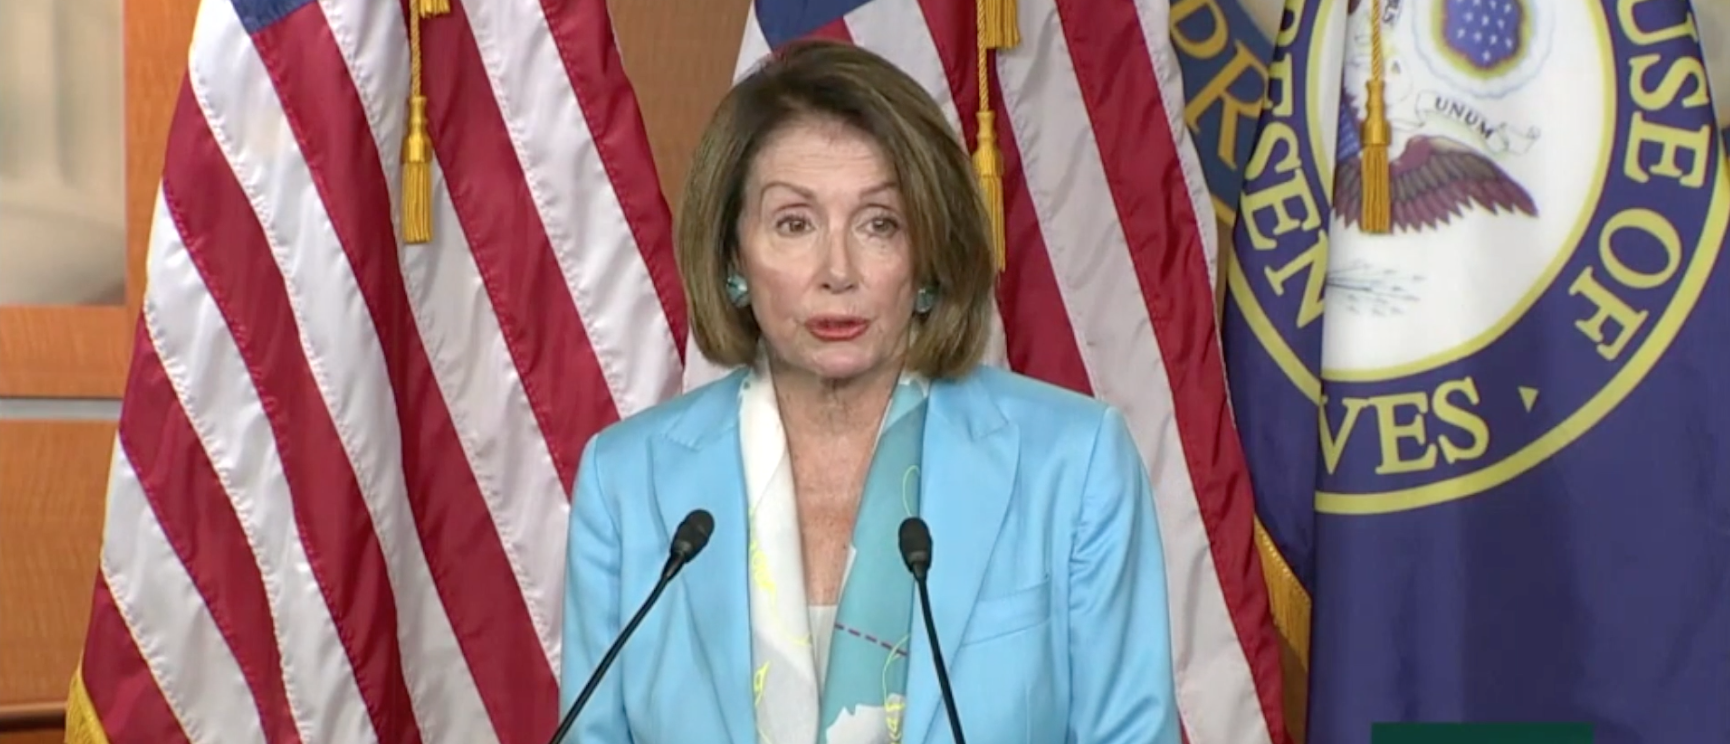 POLL: Nearly Three Fourths Of People, Half Of Dems Think Pelosi Needs To Go